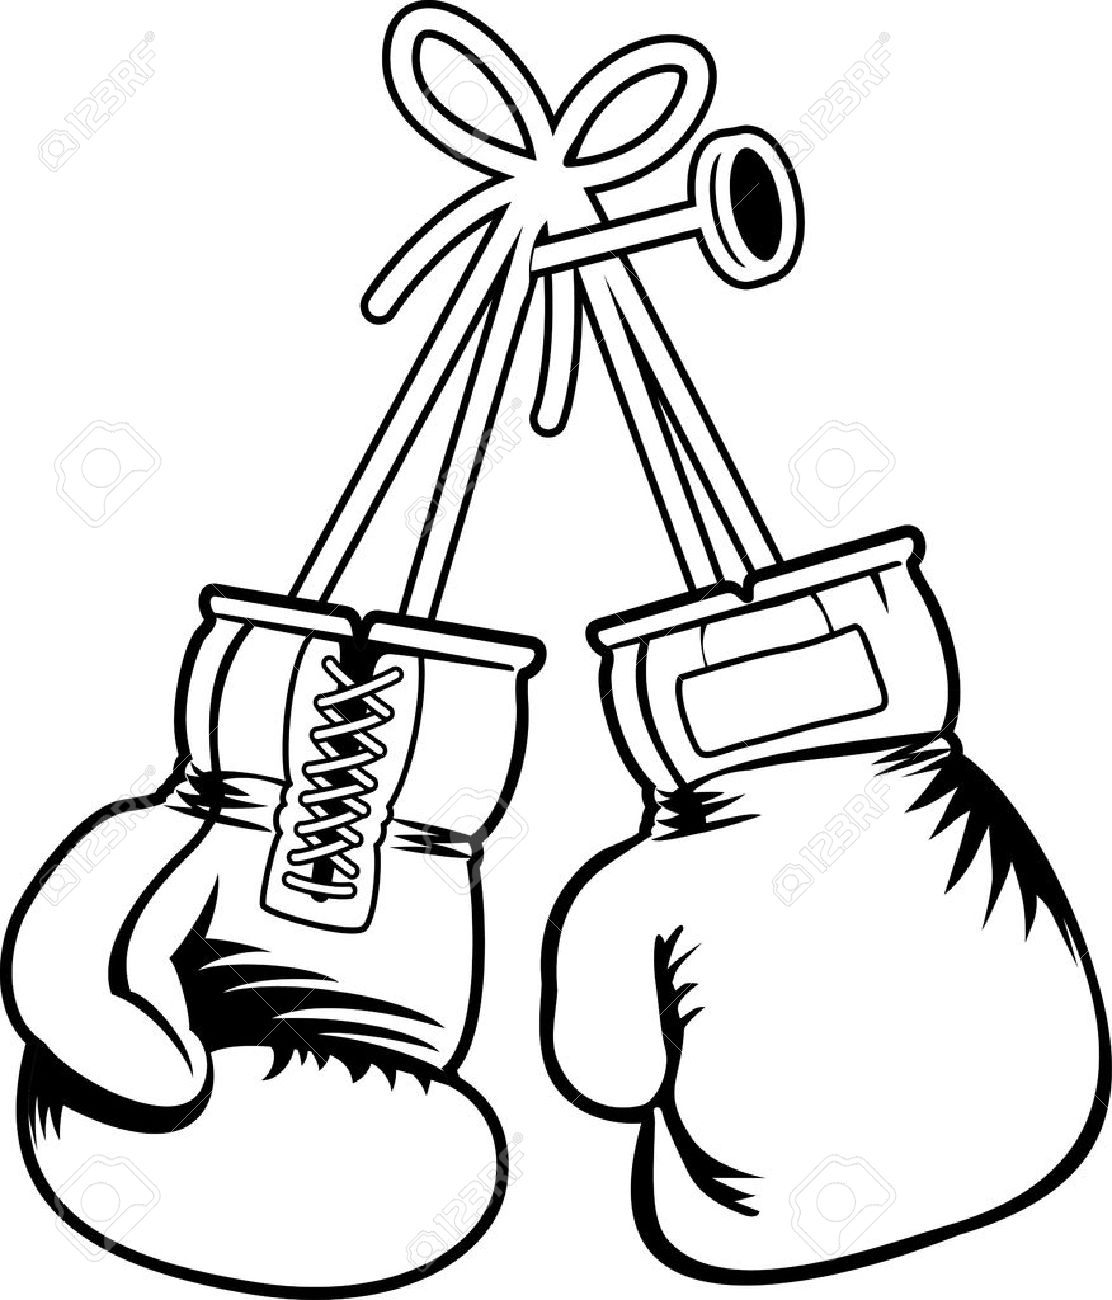 Boxer clipart black and white. Boxing drawing at getdrawings